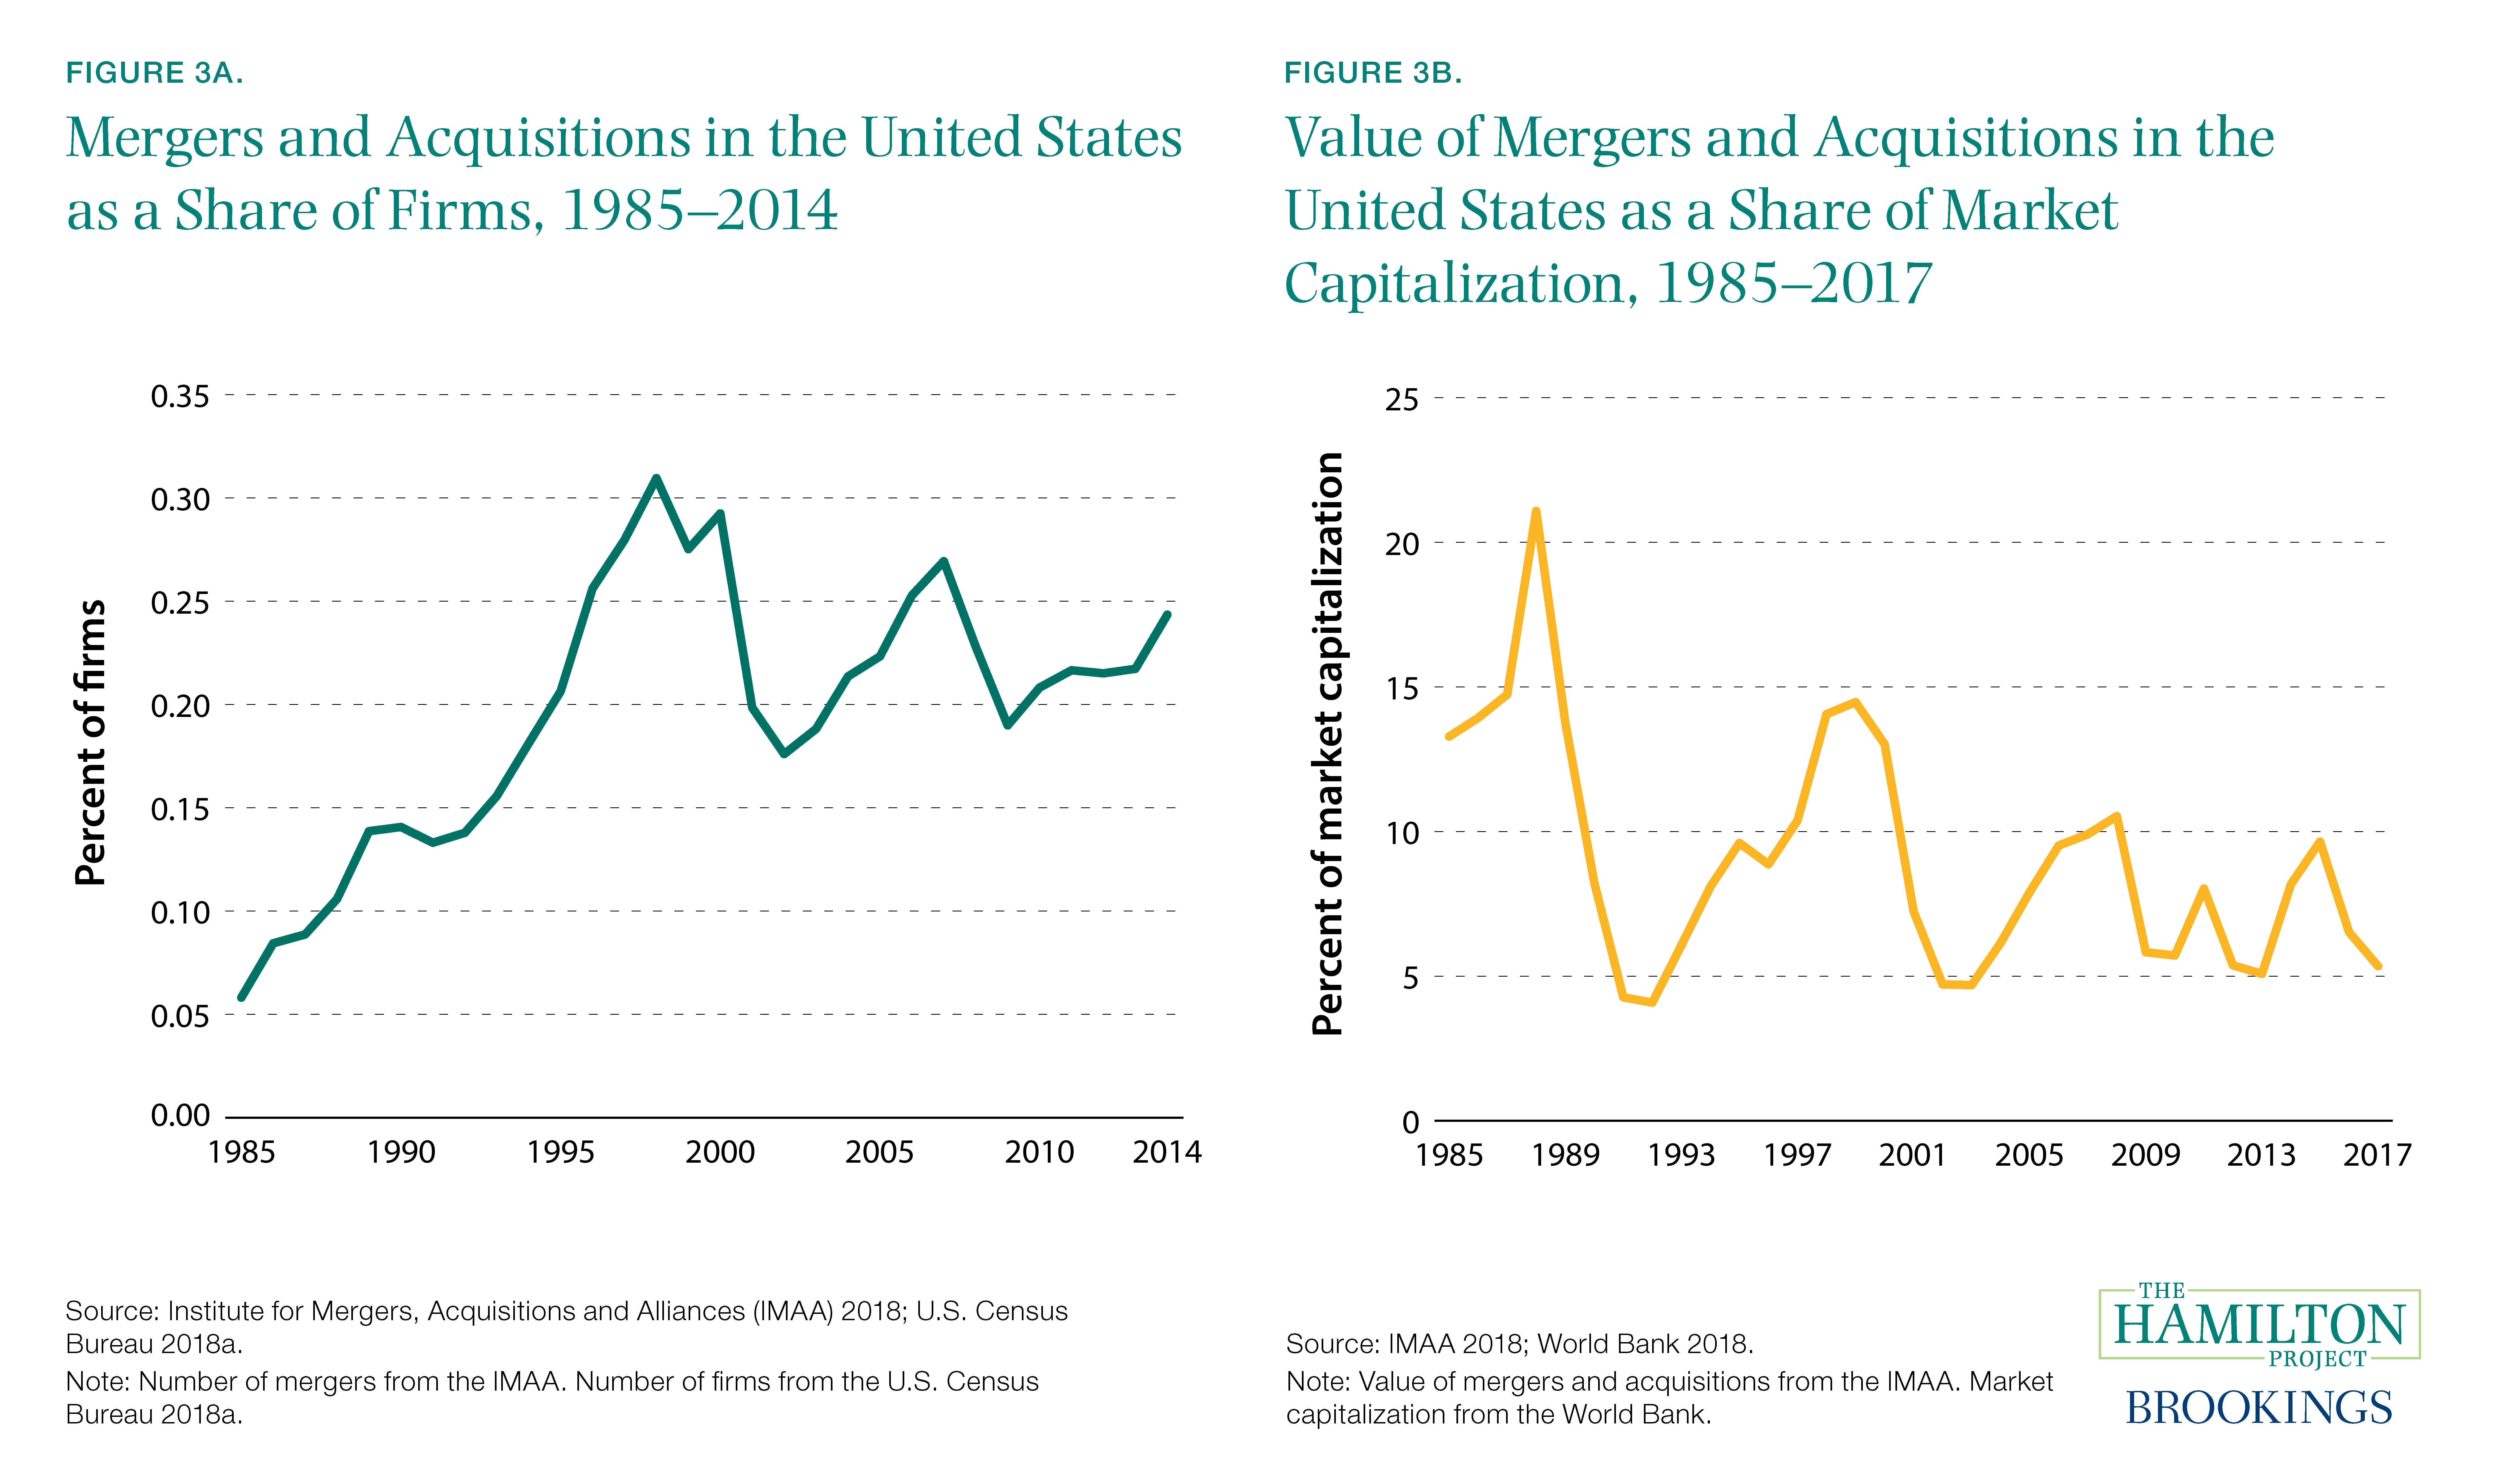 Figure 3A. Mergers and Acquisitions in the United States as a Share of Firms, 1985–2014 and Figure 3B. Value of Mergers and Acquisitions in the United States as a Share of Market Capitalization, 1985–2017